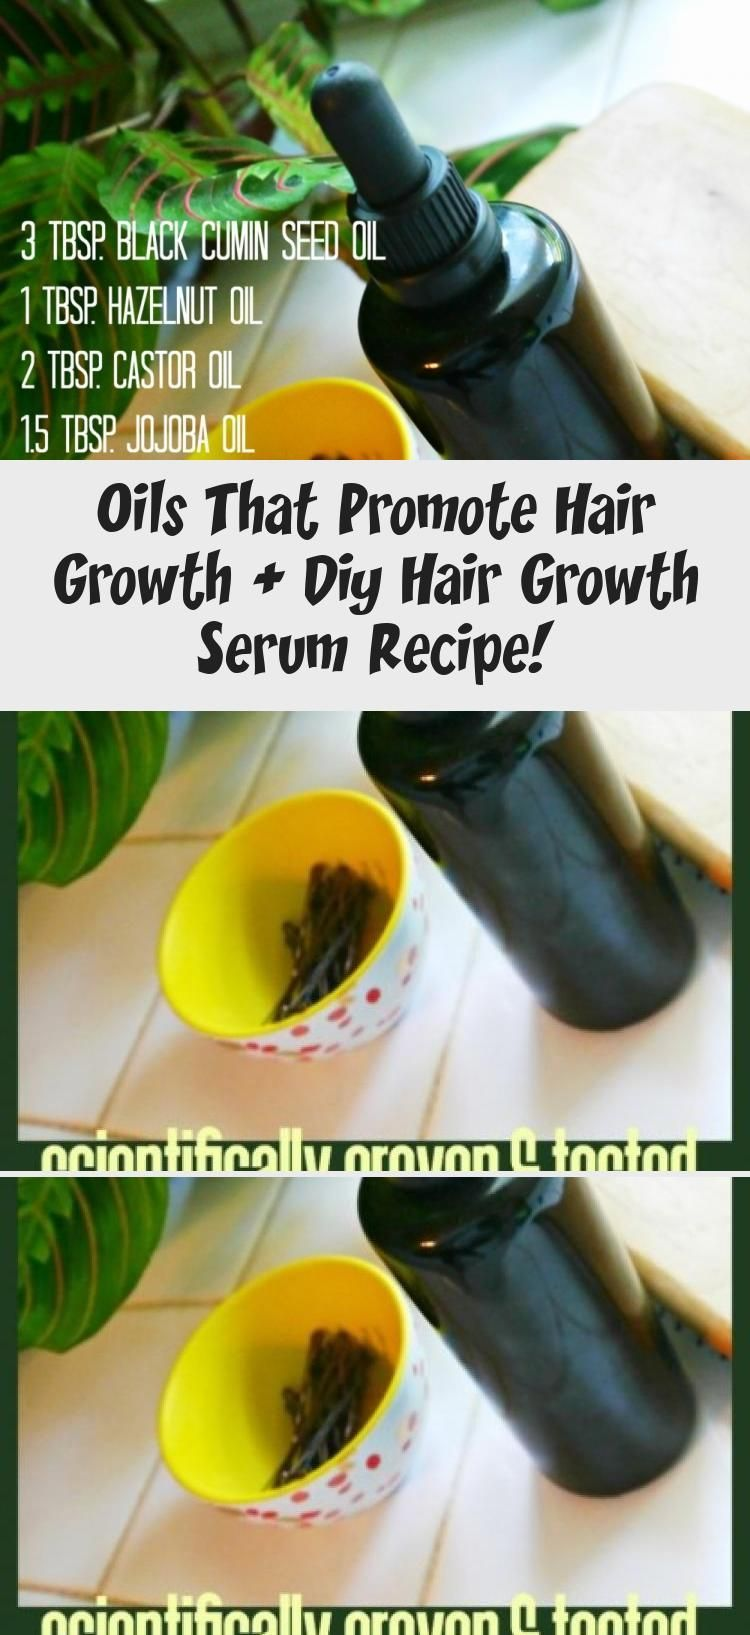 Oils that Promote Hair Growth + DIY Hair Growth Serum Recipe! - Jenni Raincloud #hairgrowthForKids #ScalpDetoxhairgrowth #hairgrowthMassage #hairgrowthForMen #hairgrowthSharkTank #fasterhairgrowth